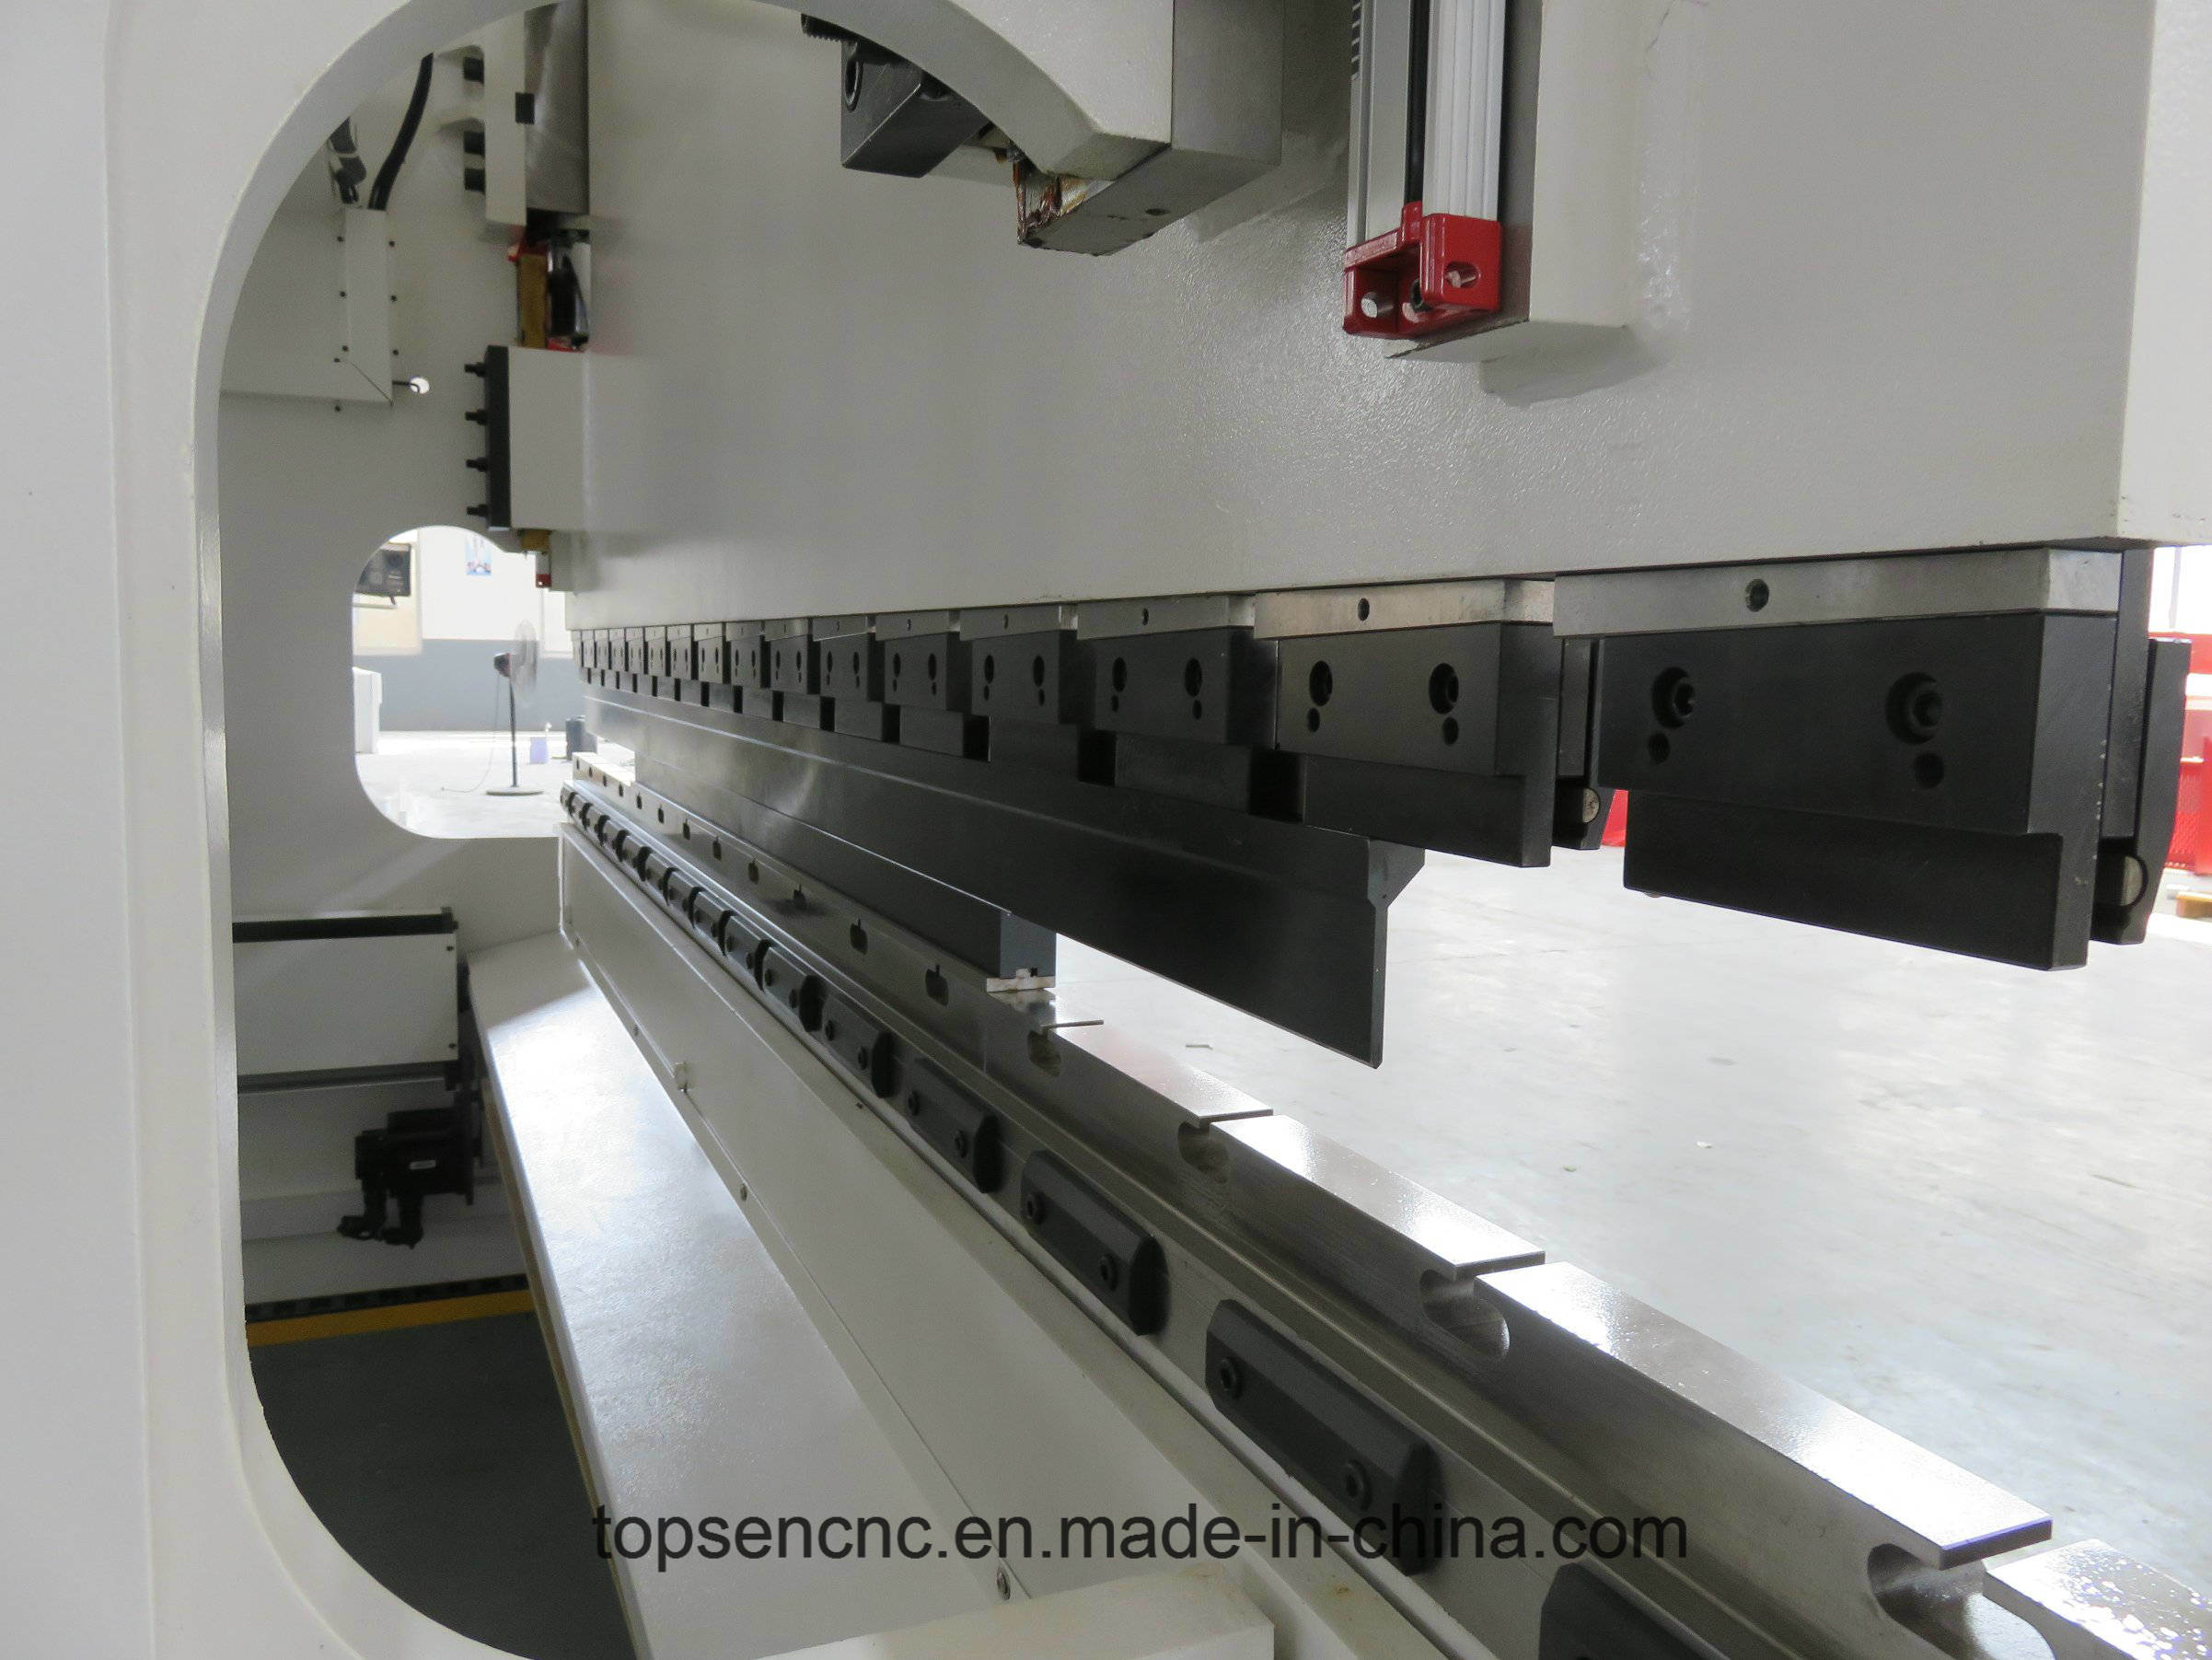 Cybelec CT8 Elecctro-Hydraulic Press Brake with Reasonable Price